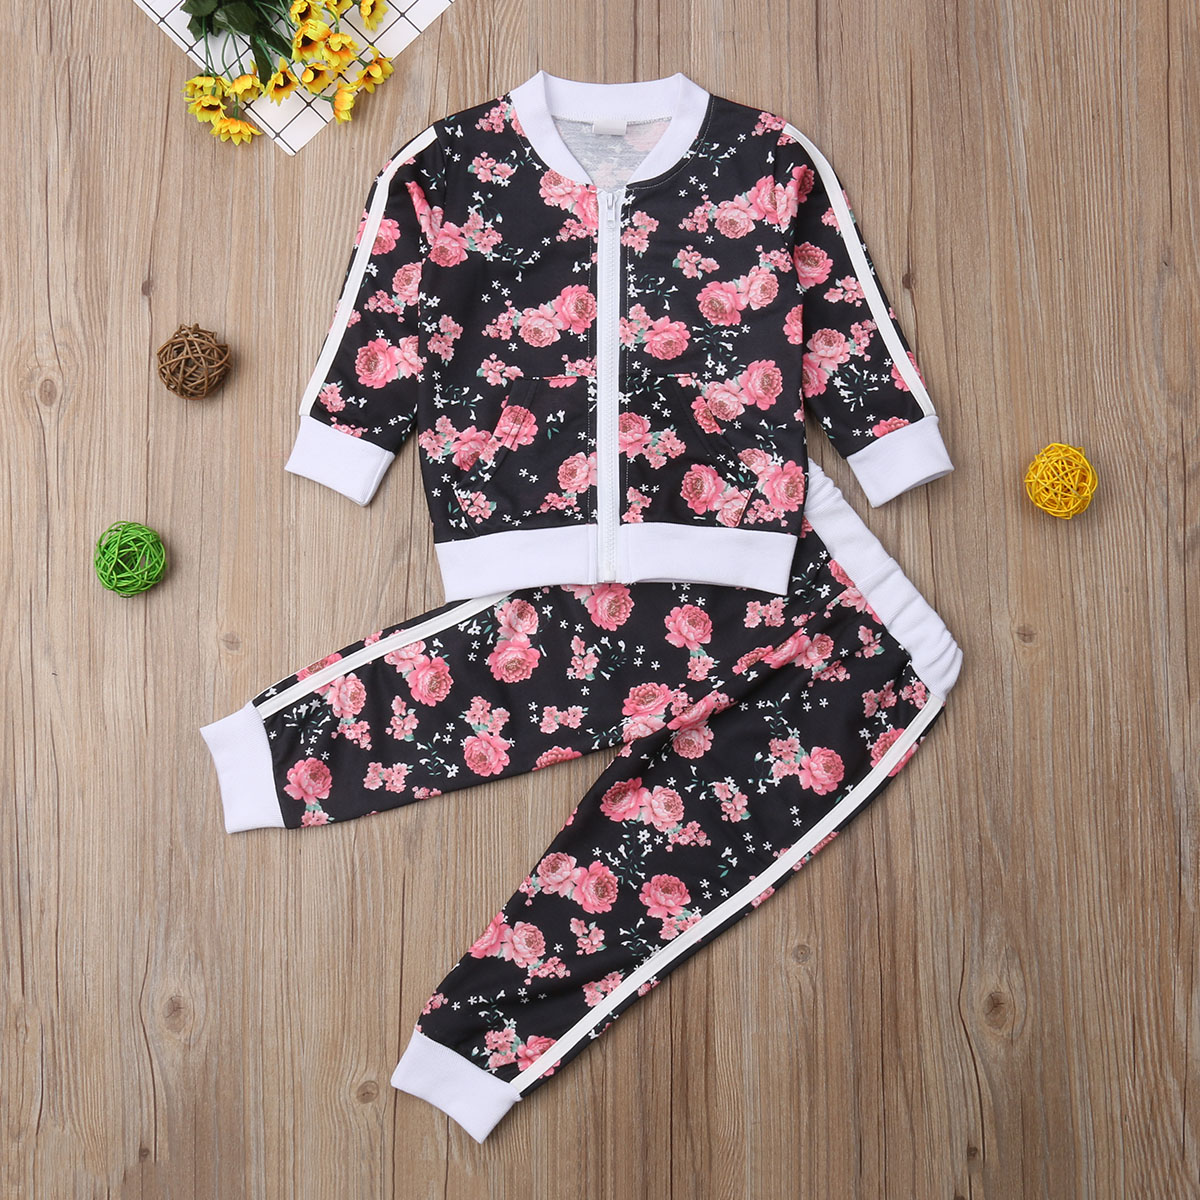 Kids Little Girls Floral Clothes Sets Toddler Baby Girl Infant Flower Clothing O Neck Zipper Top Pants Outfits Tracksuit 2019 in Clothing Sets from Mother Kids